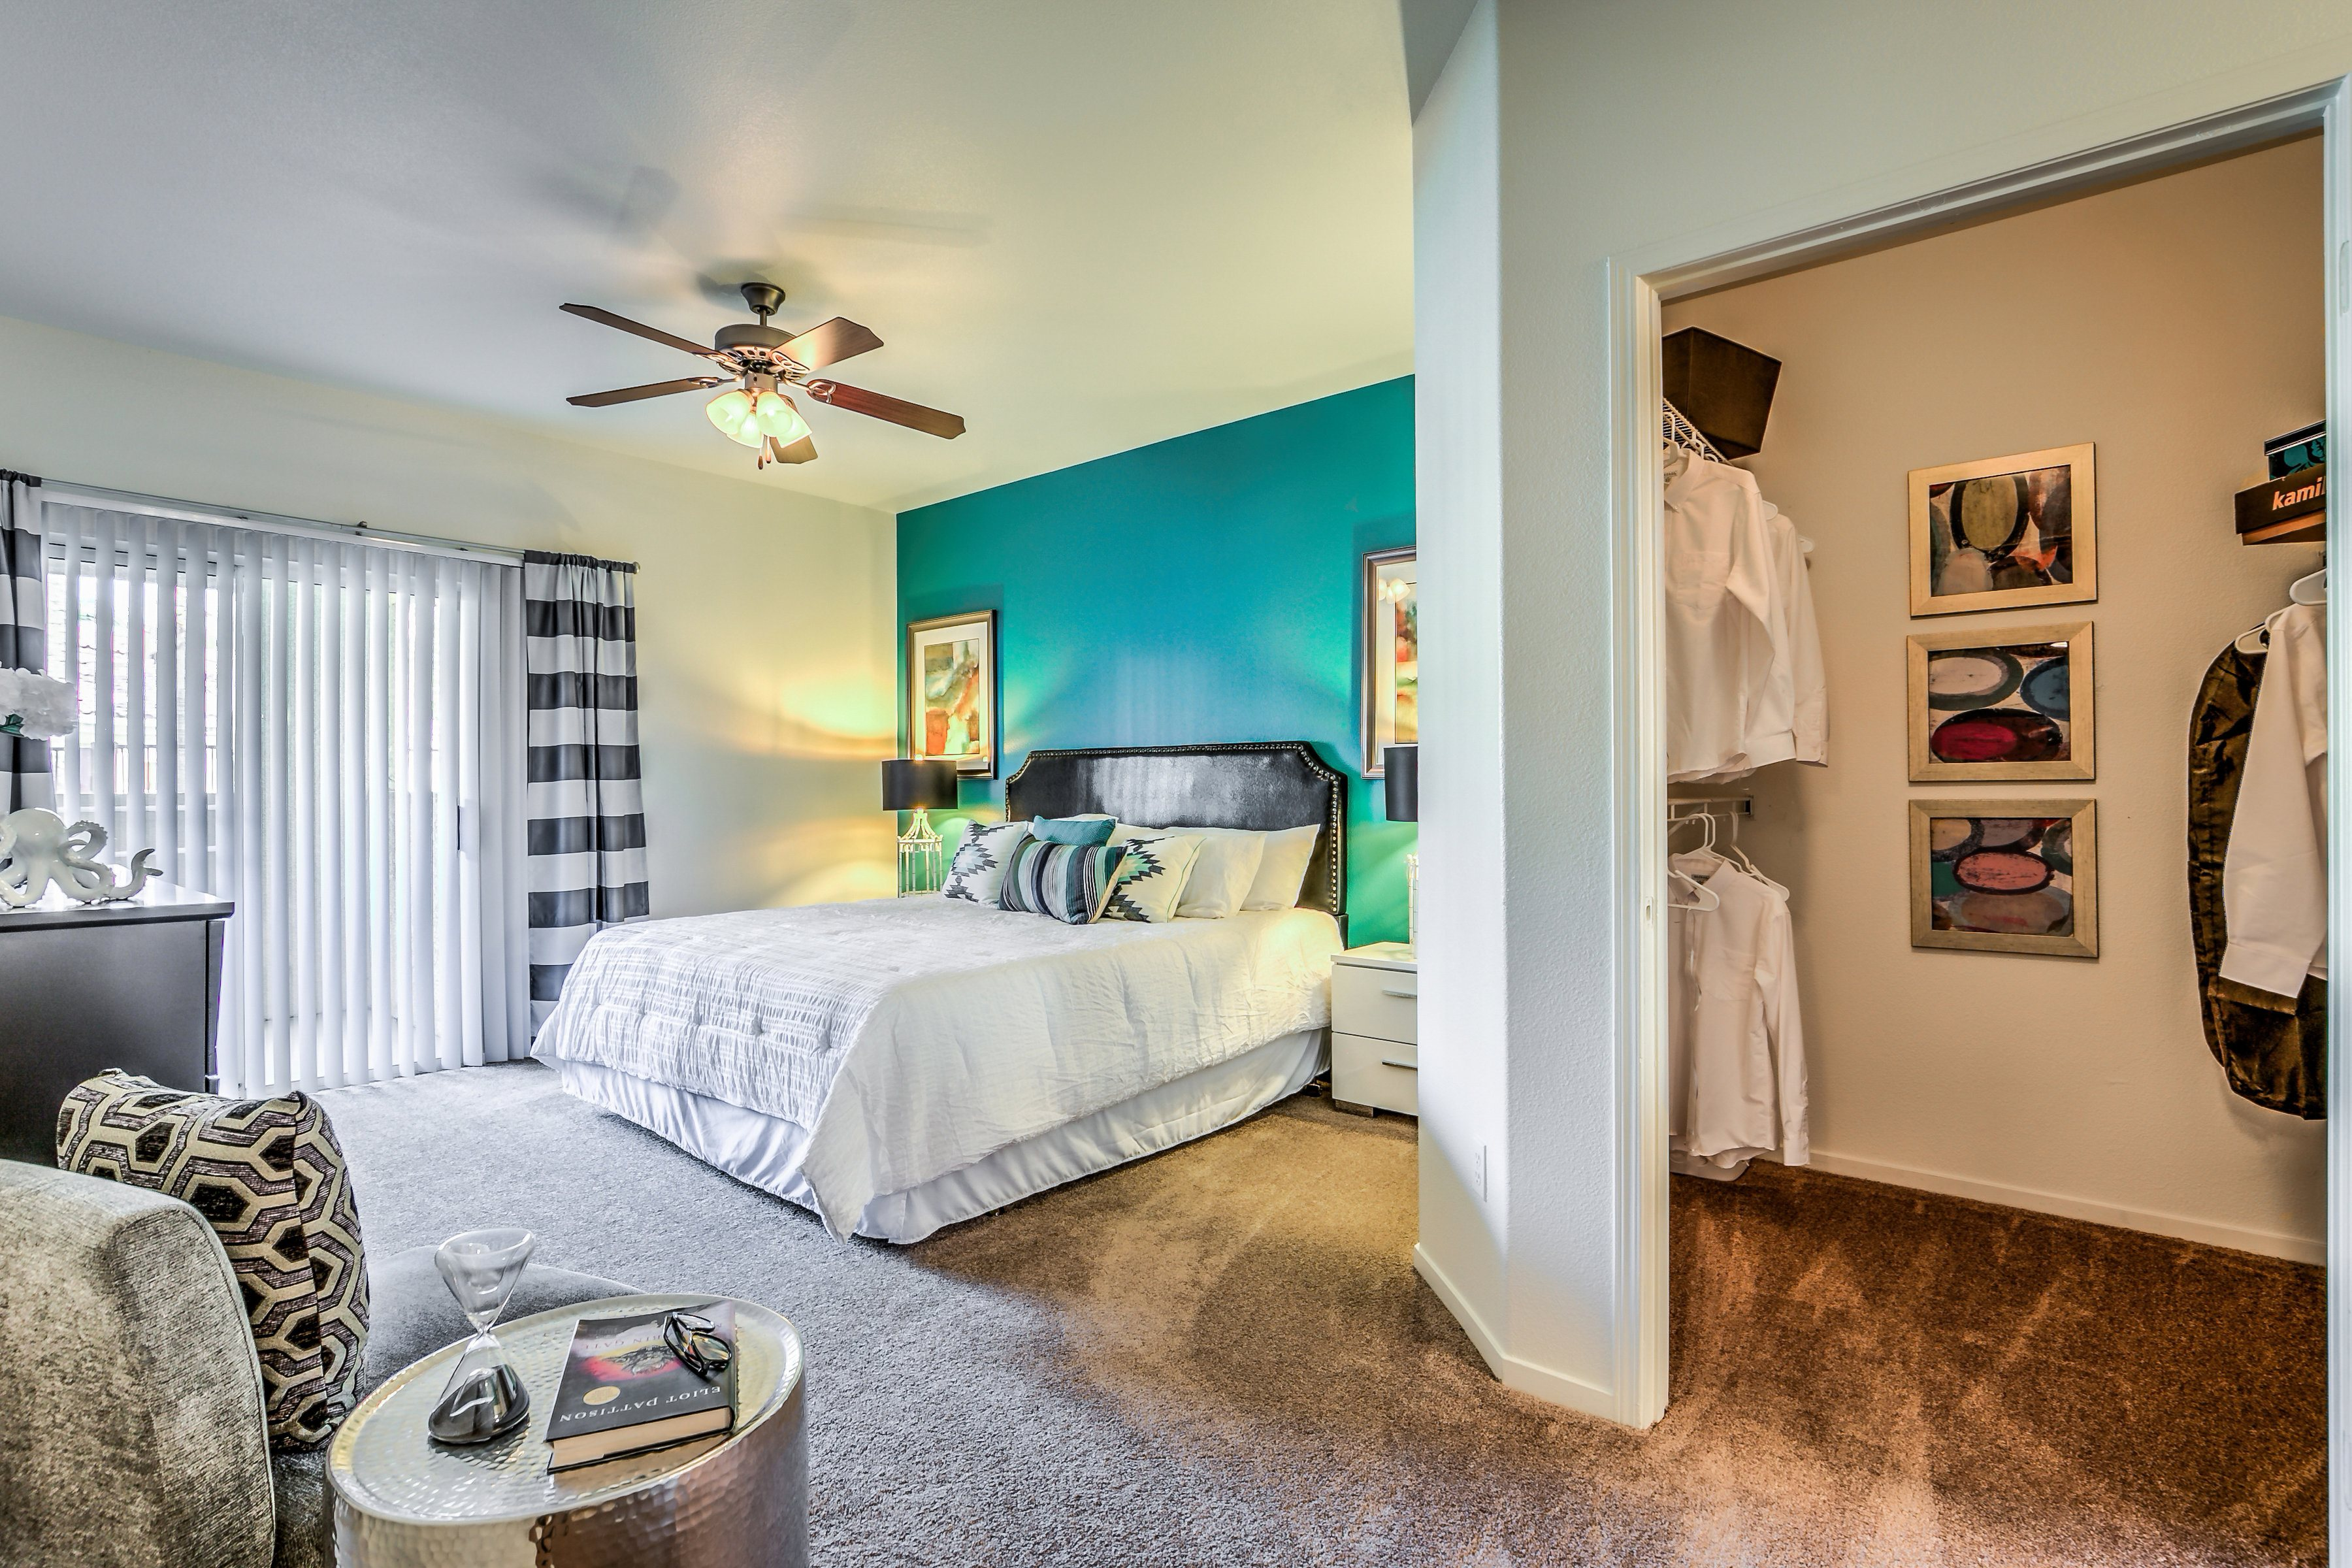 Spacious Carpeted Bedrooms That Accommodate King Size Beds at Calypso Apartments